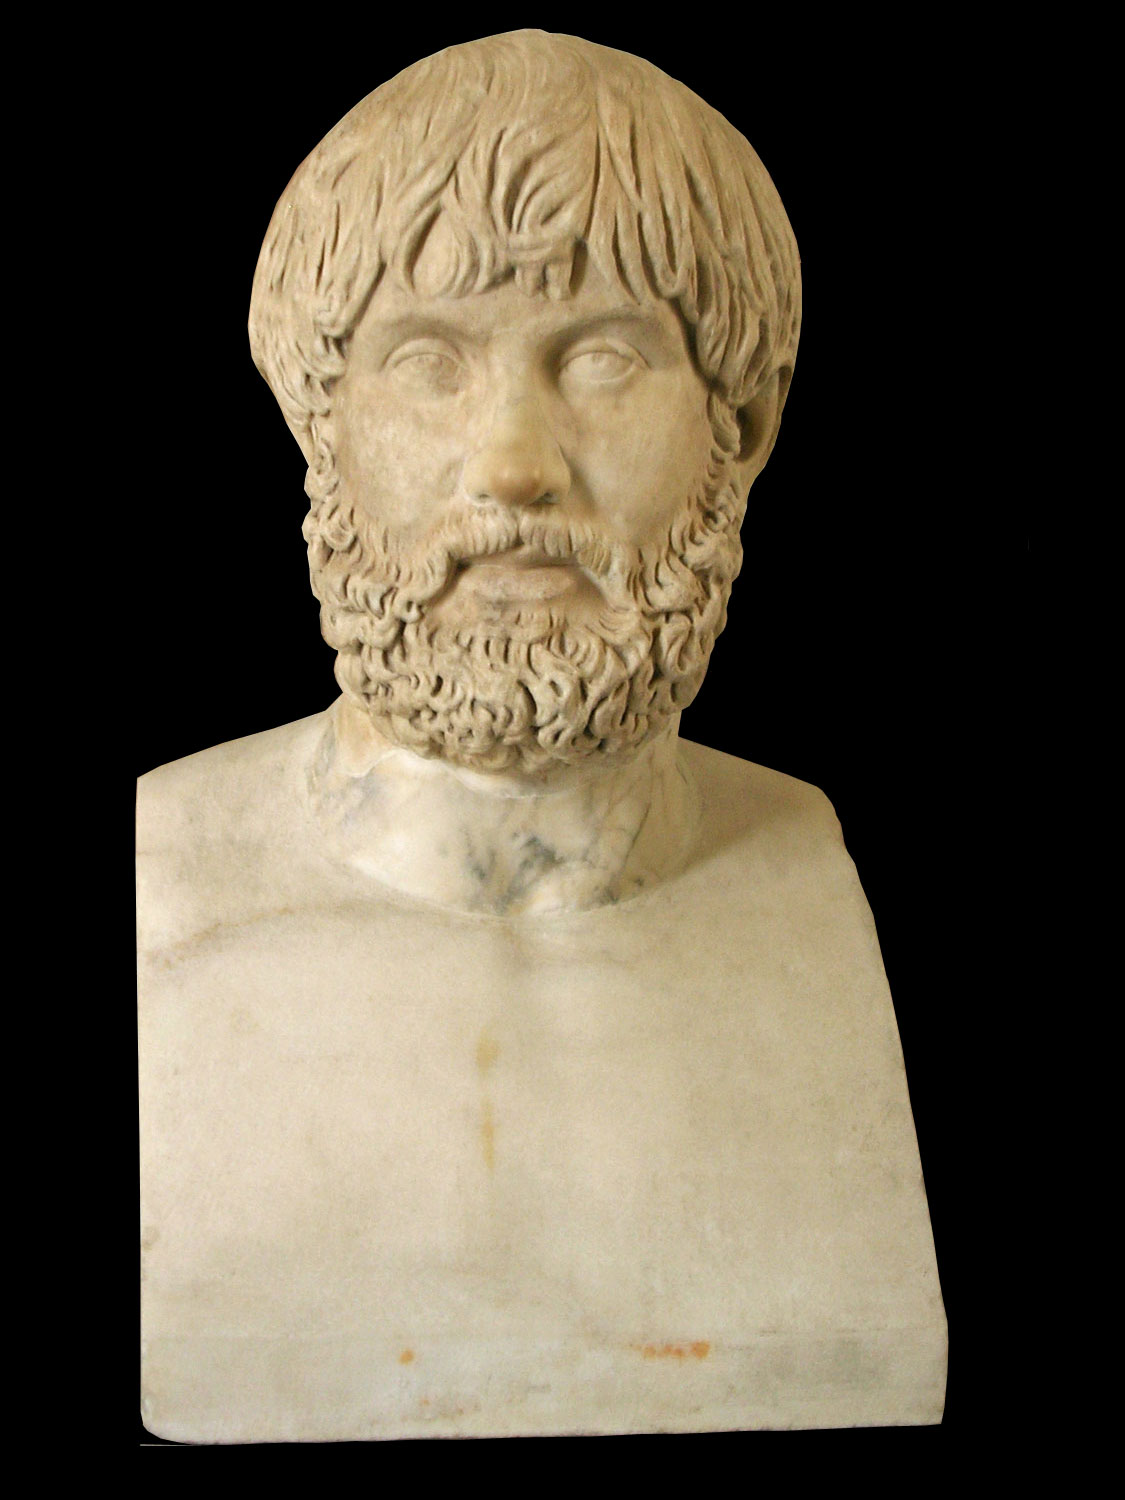 Herm with a portrait head. 2nd century CE. Inv. No. MC1910. Rome, Capitoline Museums, Palazzo Nuovo